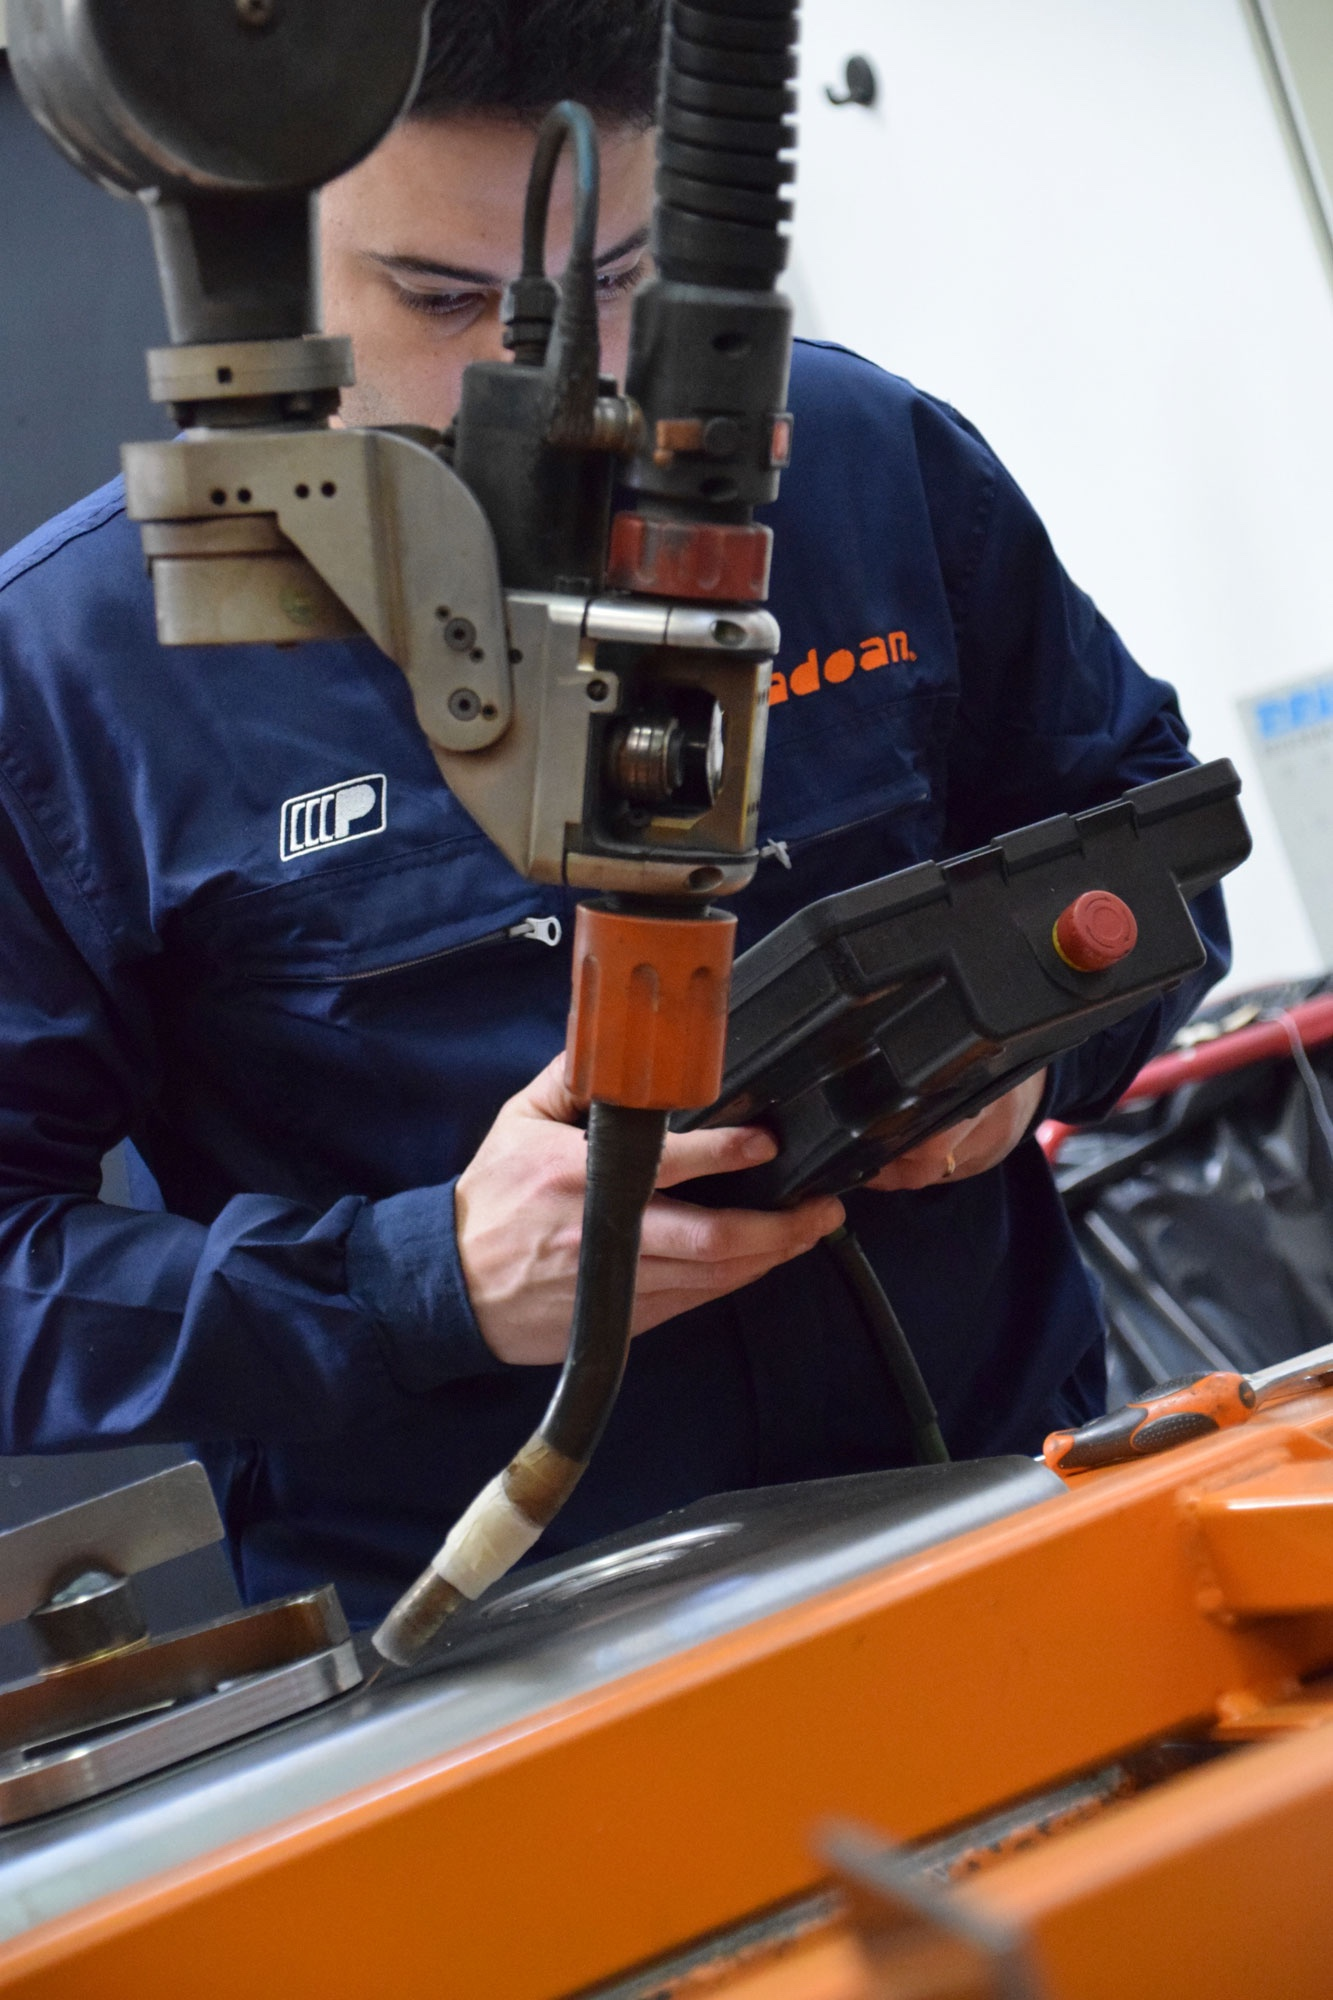 MIG/MAG Automatized welding tech